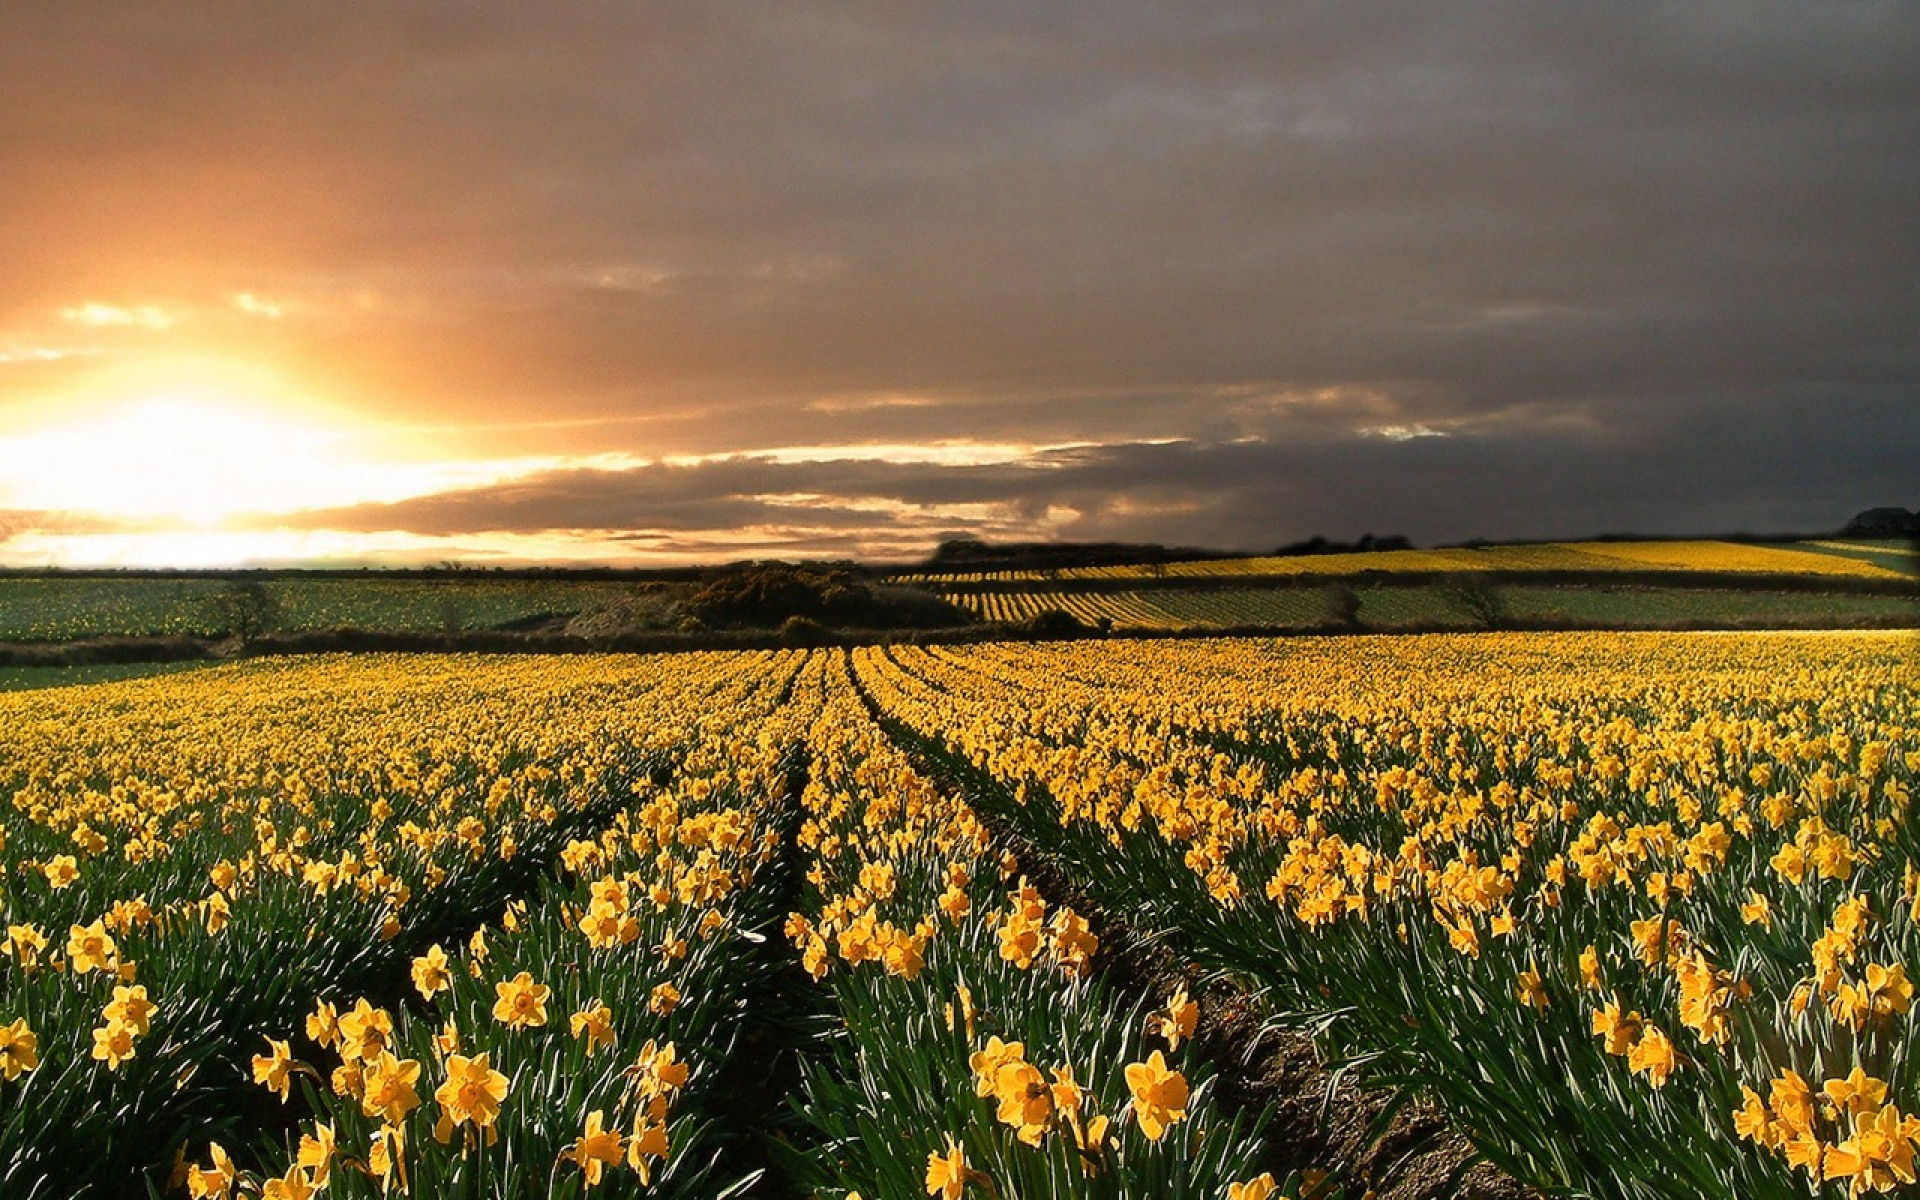 Animated Girly Wallpapers Daffodils Field Sunset Horizon Wallpapers Daffodils